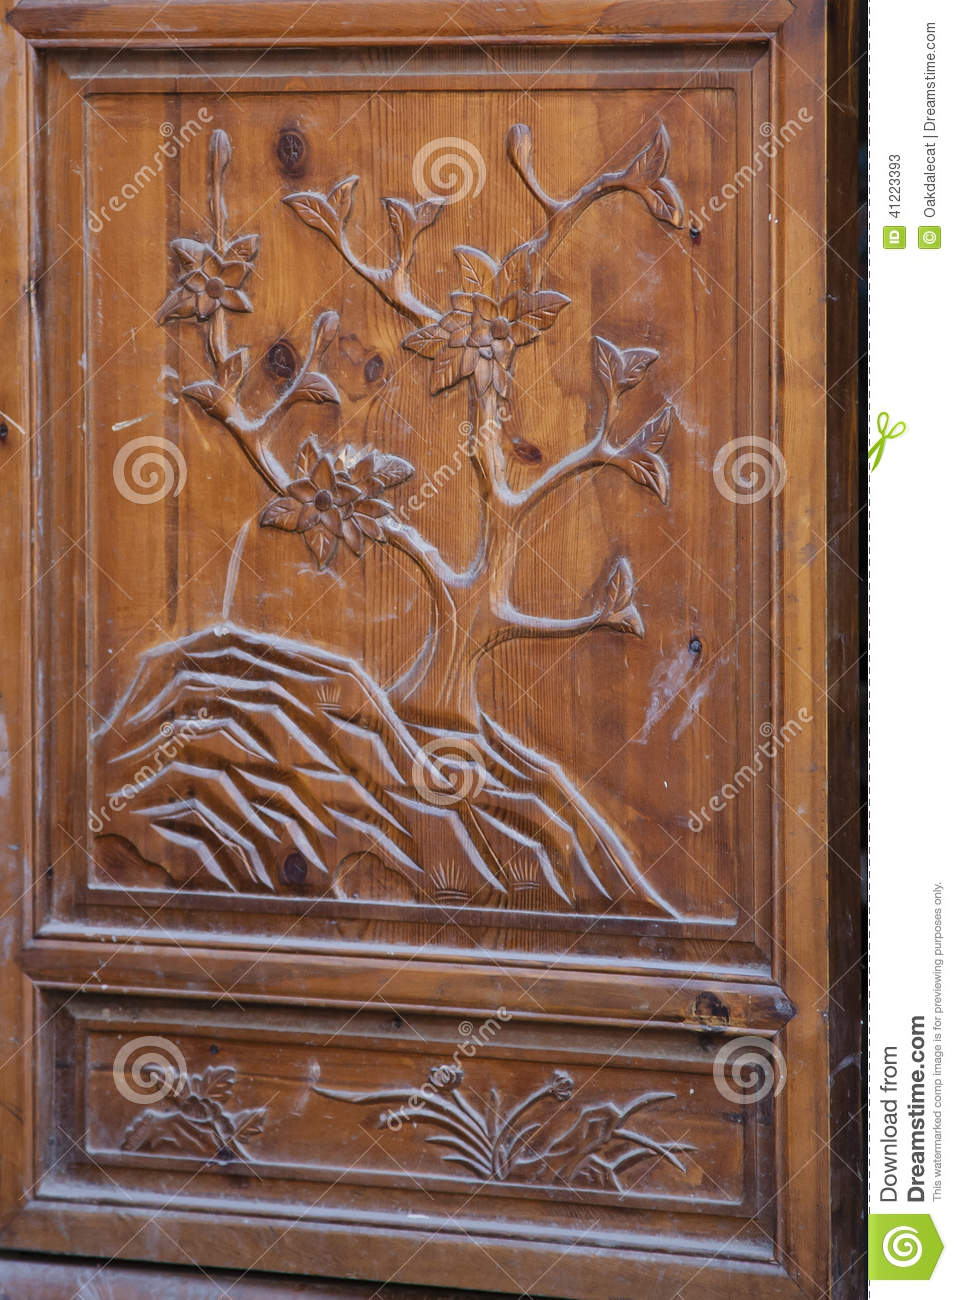 Ornate chinese door stock image image of beautiful for Wood carving doors hd images